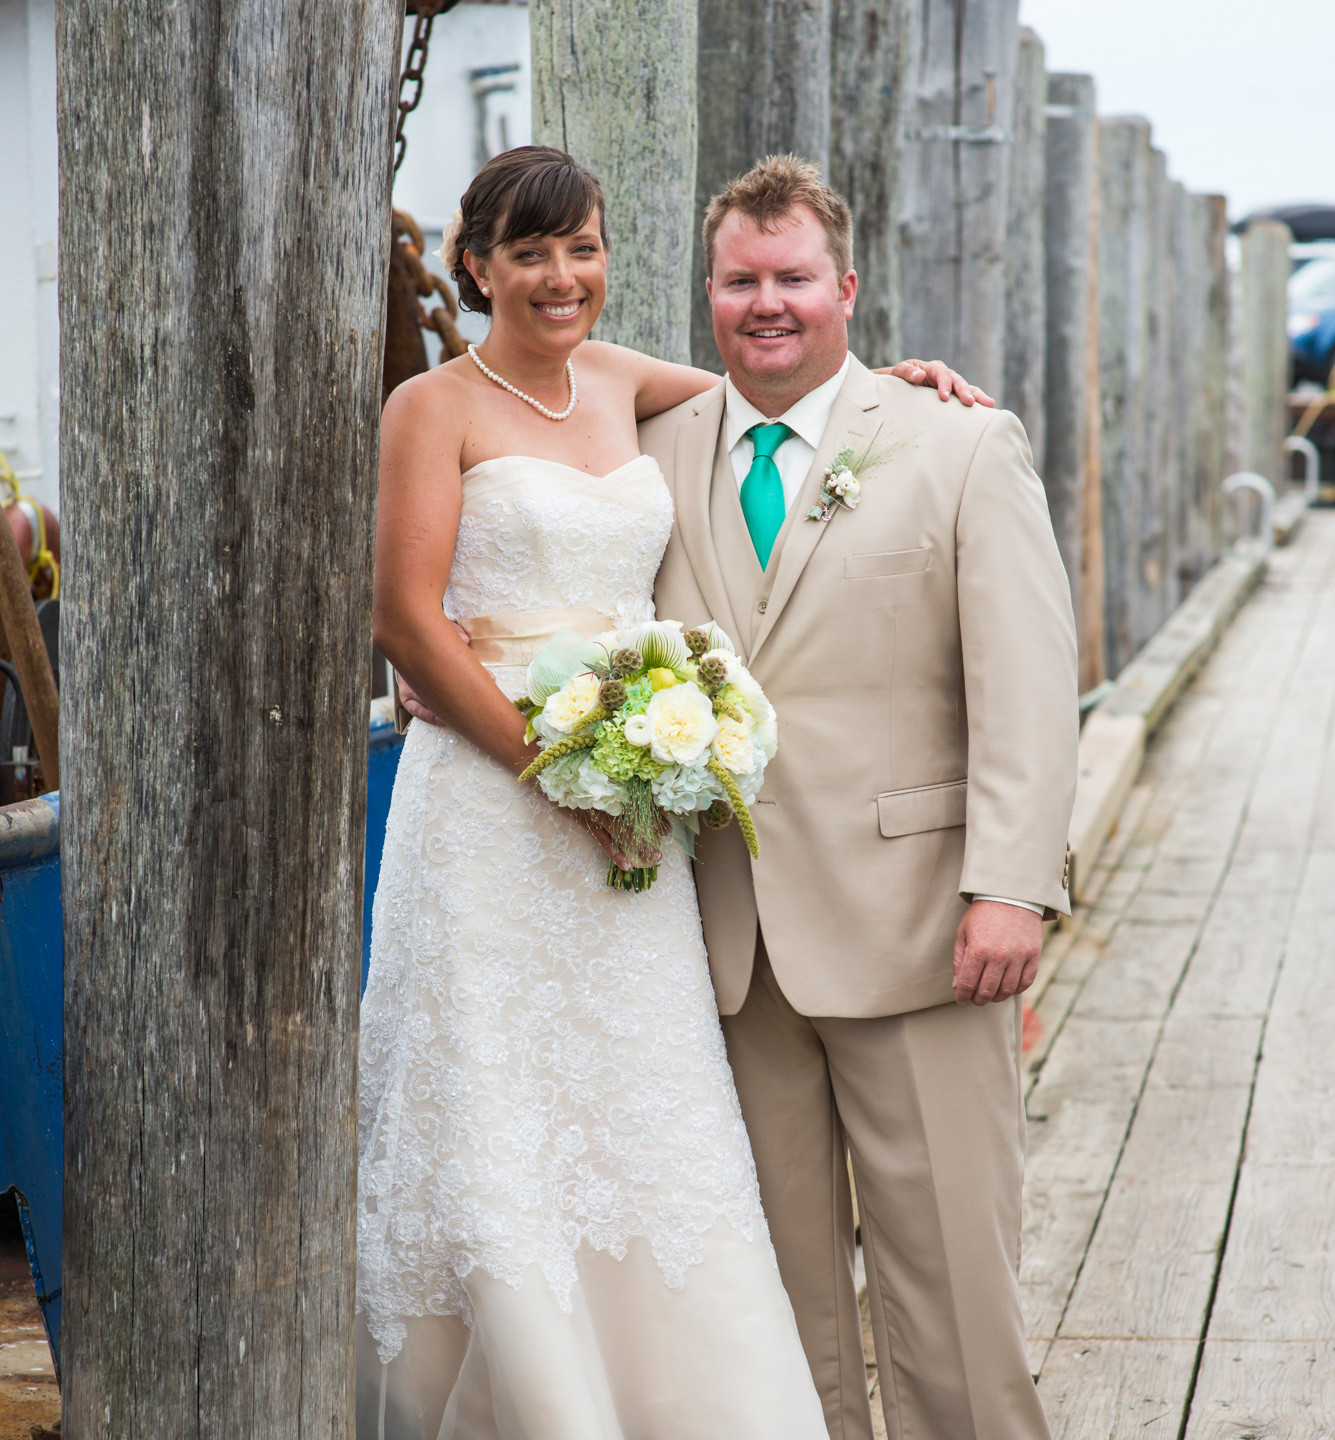 The Beach Plum Inn & Restaurant is very close to Menemsha photo by David Welch Photography